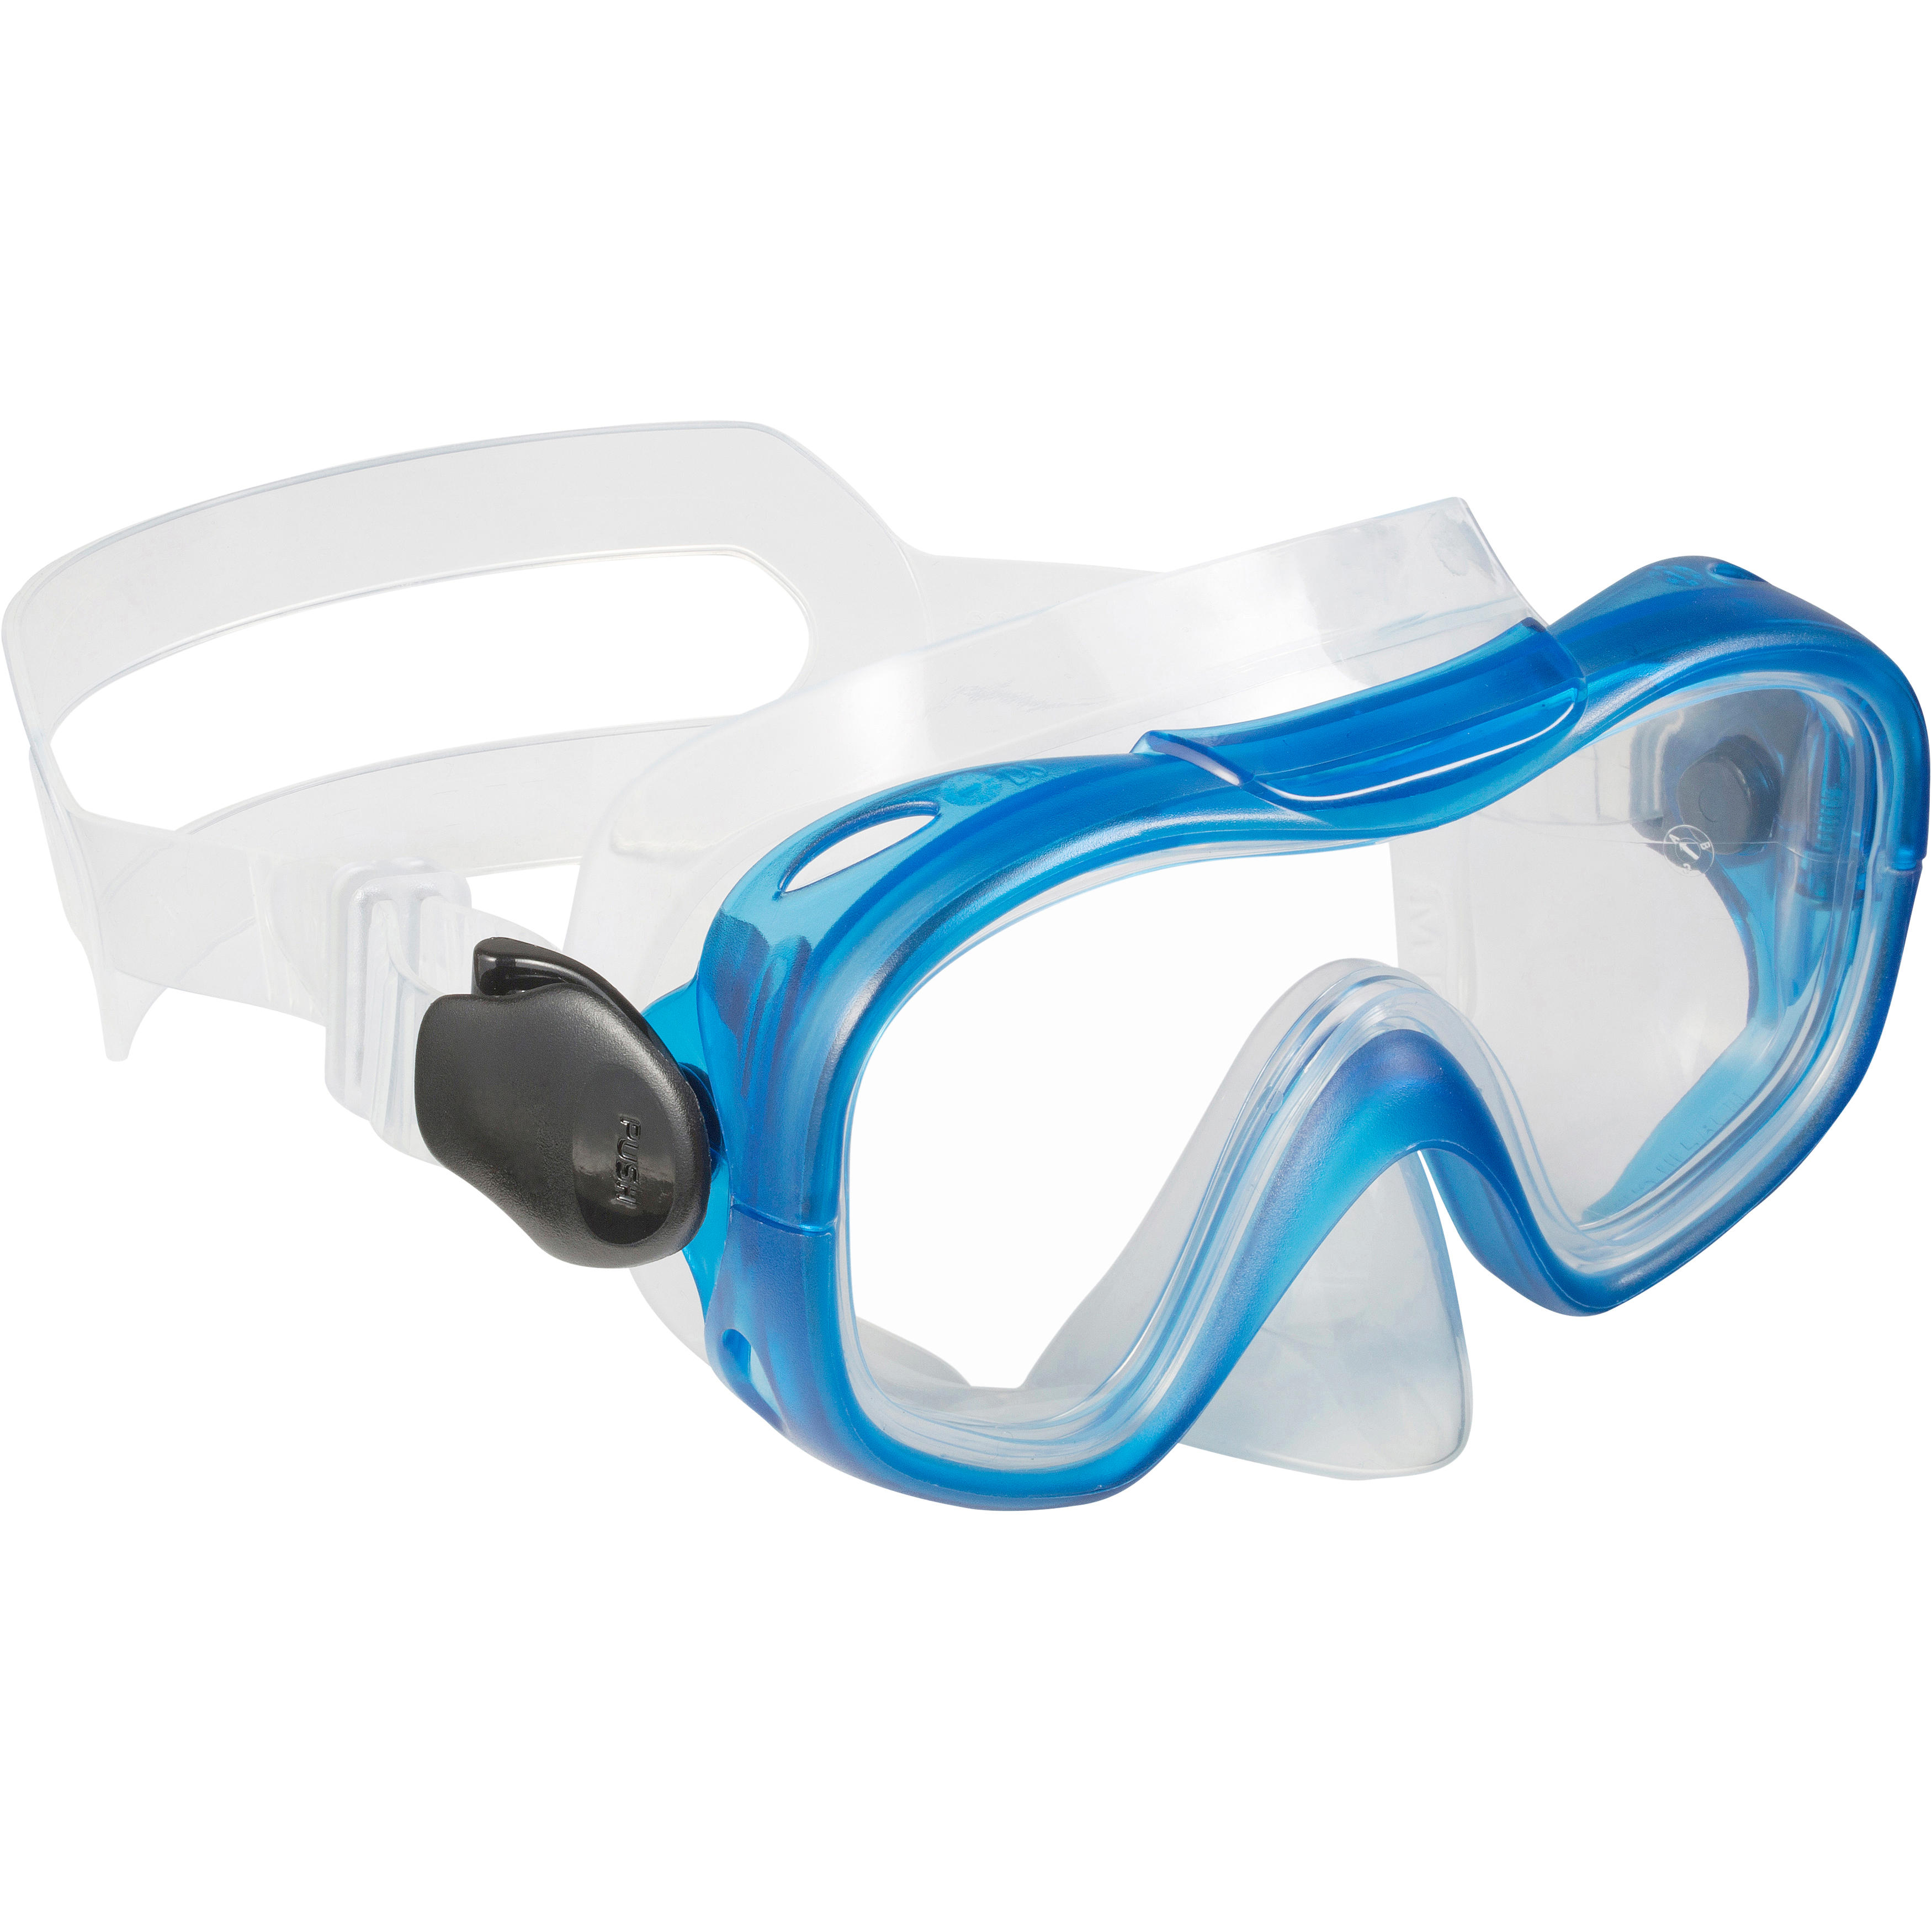 Kids SCUBA Diving or Snorkeling Mask 100- Blue